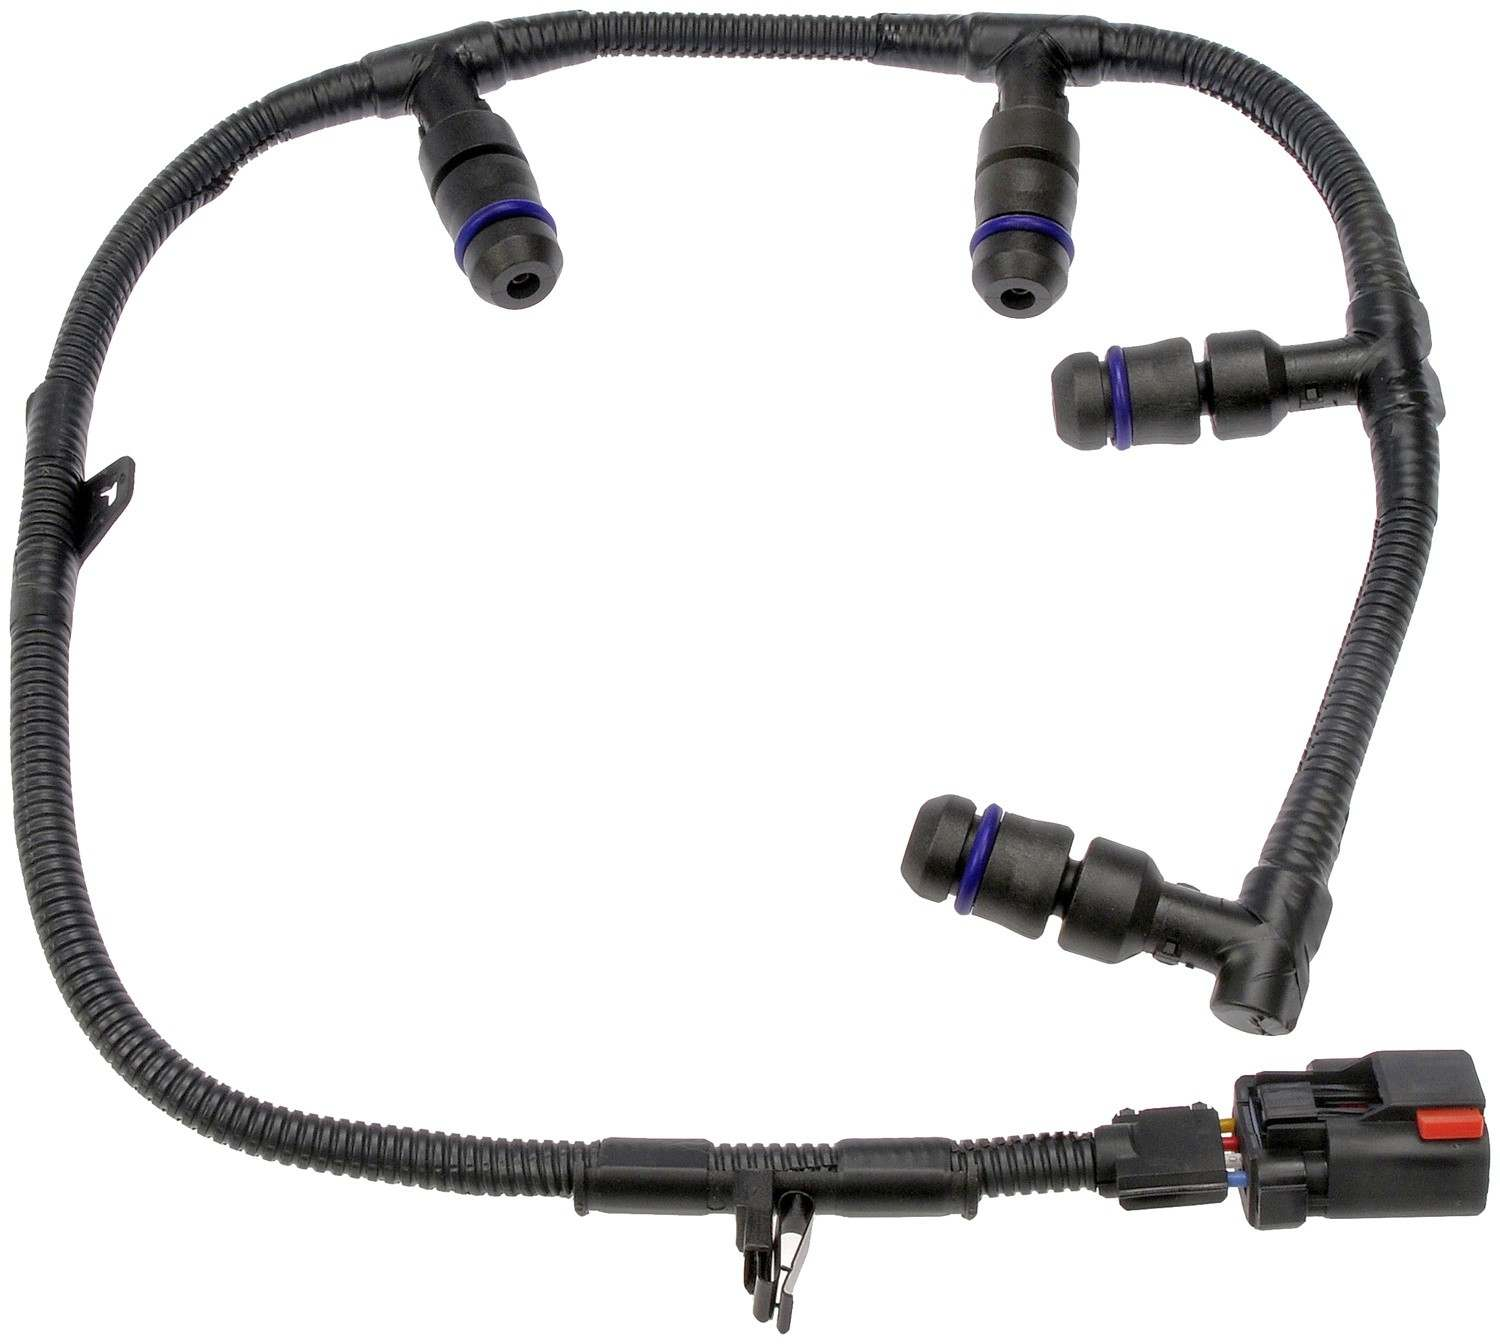 Glow Plug Wiring Harness Opinions About Diagram 2005 Ford F250 4x4 Diesel Left Fits 05 07 F 250 Super Duty 6 0l V8 Ebay 19 Tdi 66 Duramax